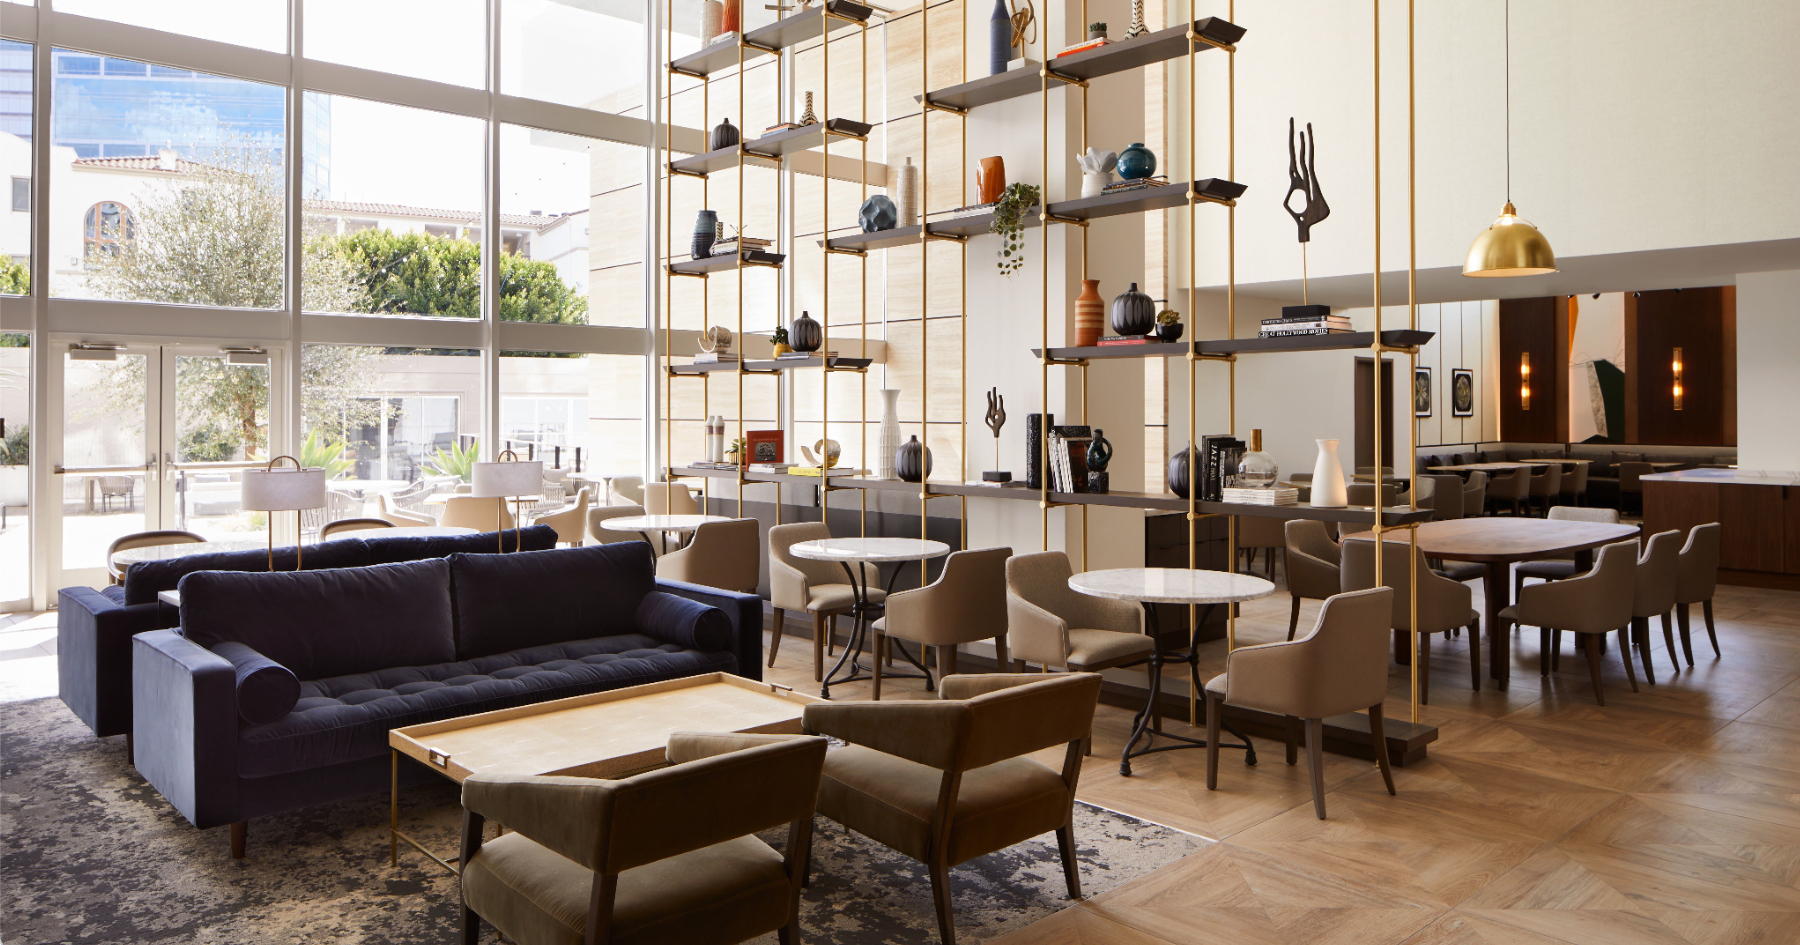 The W Lounge at Westwood Village.